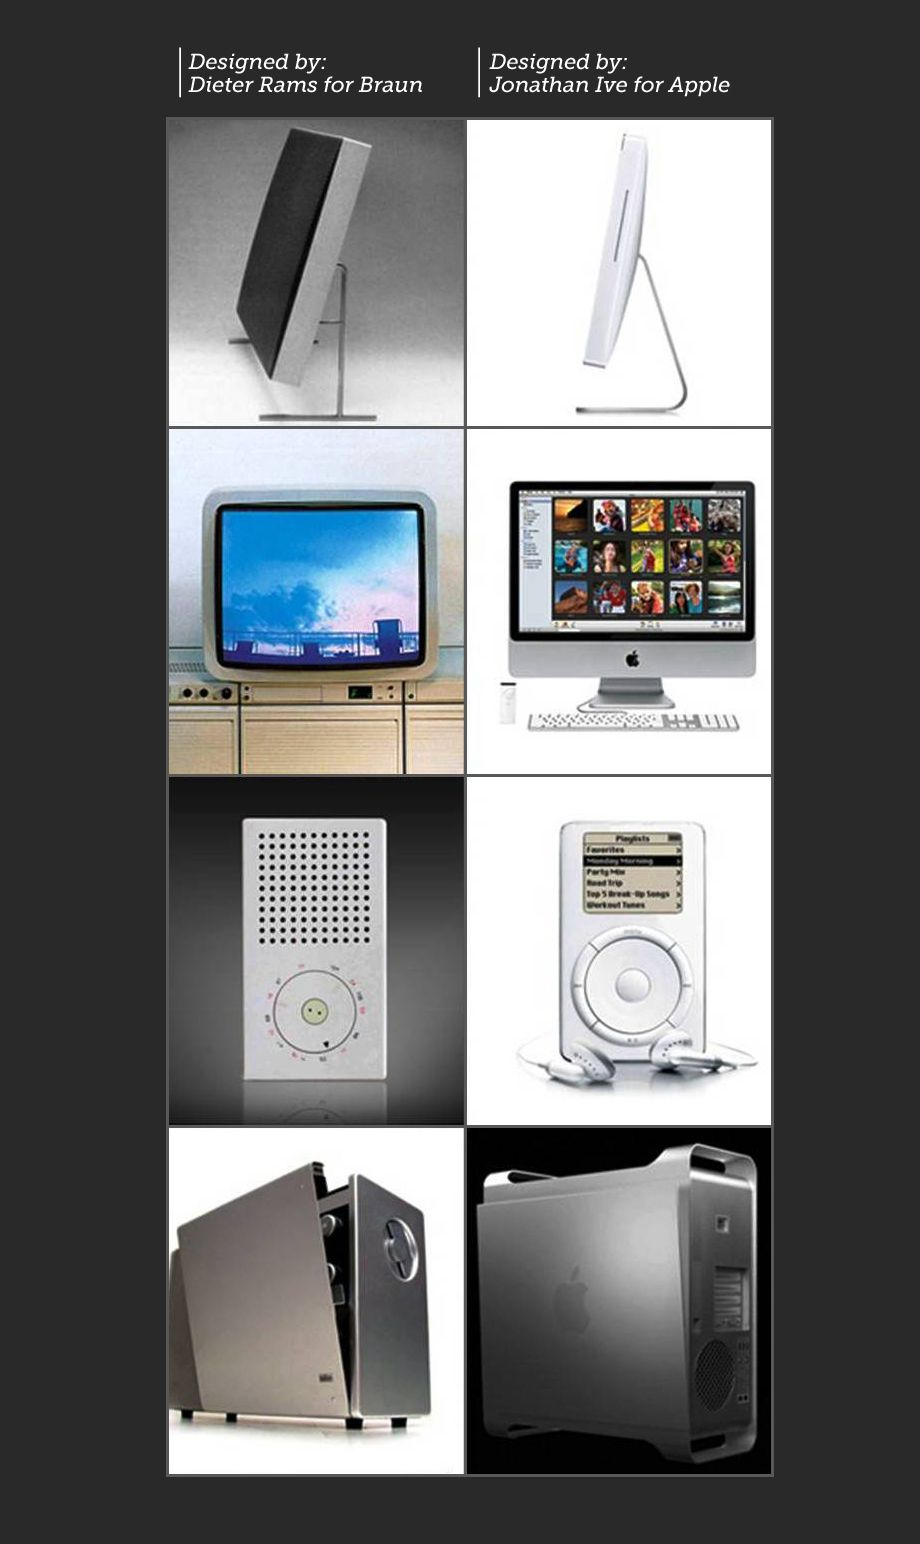 dieter rams for braun vs jonathan ive for apple q 09 finding inspiration blog. Black Bedroom Furniture Sets. Home Design Ideas